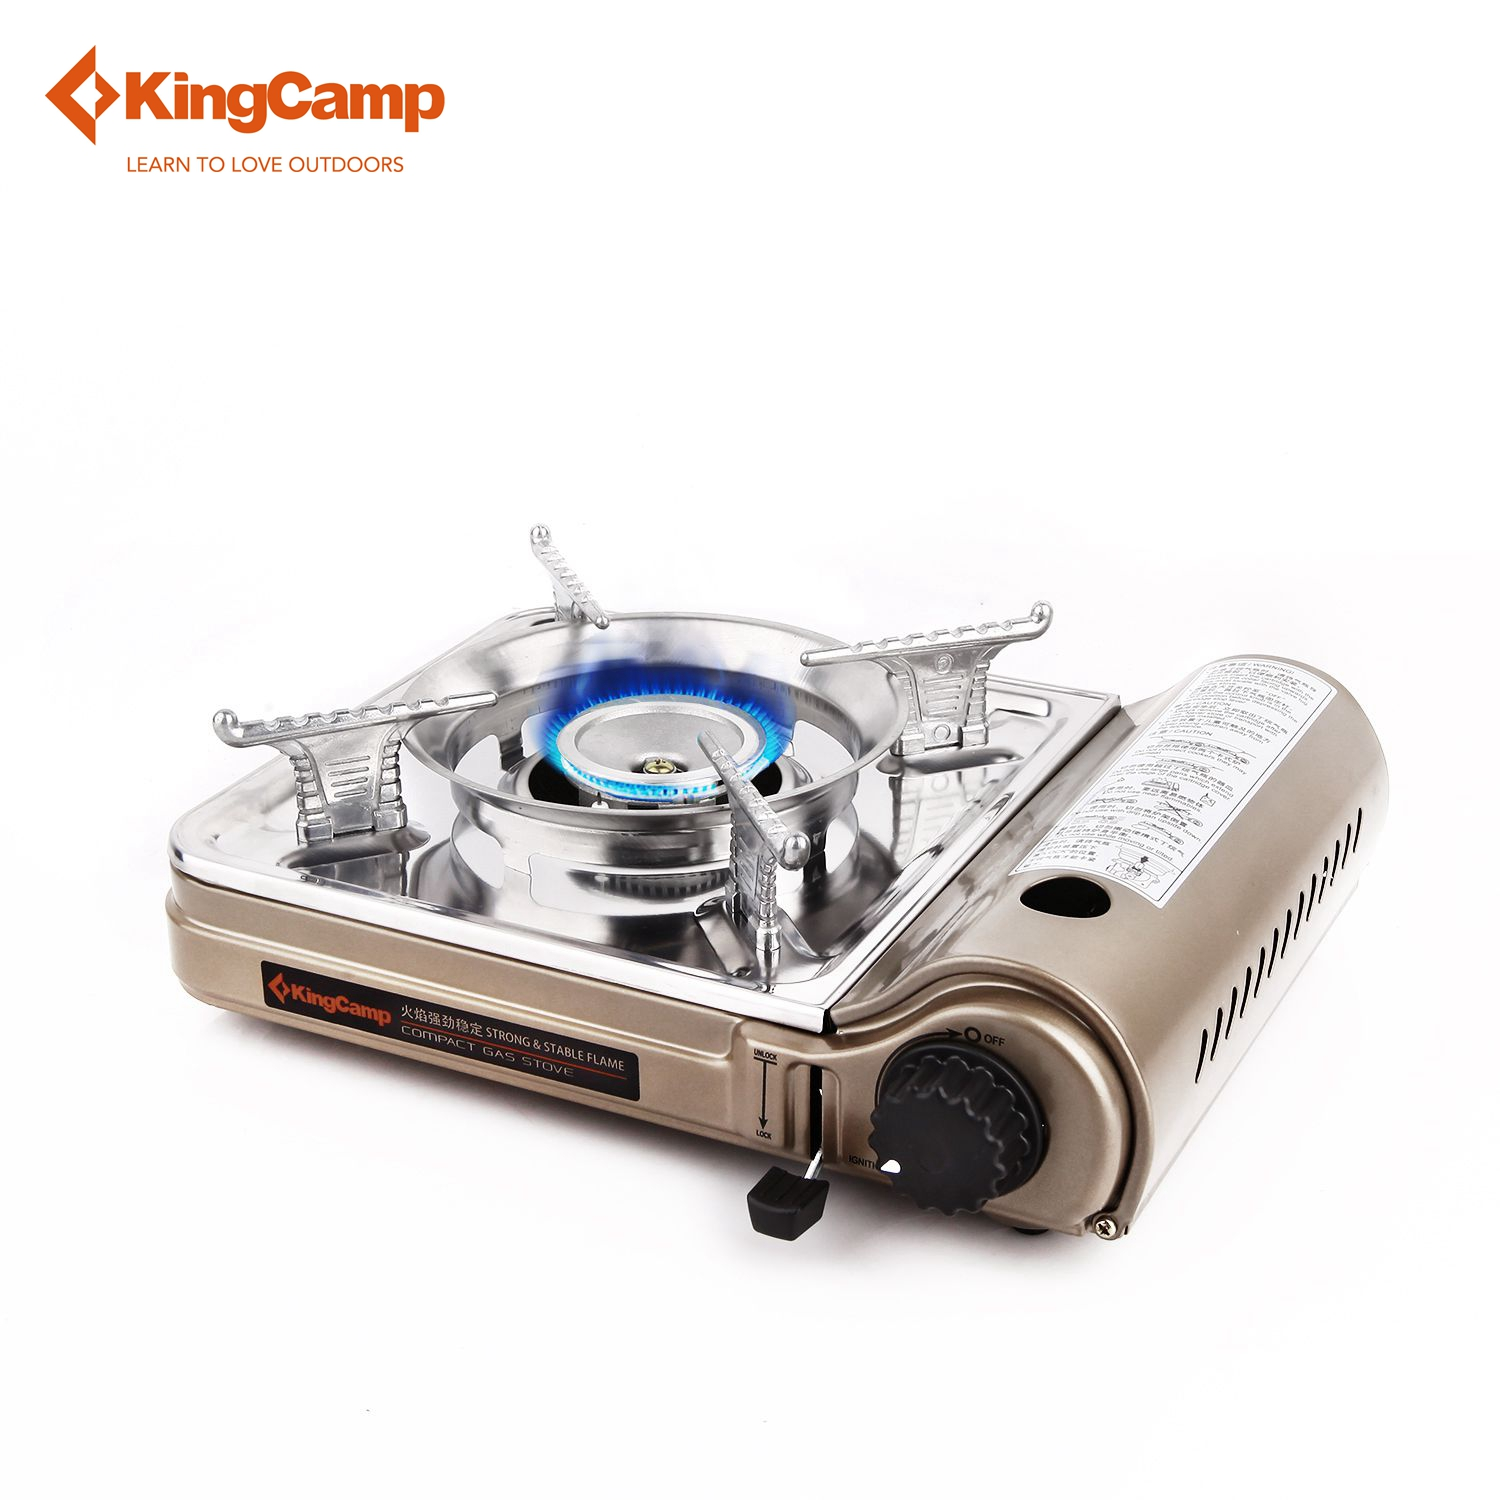 KingCamp Portable Camping Stove Outdoor Gas Stove for ...